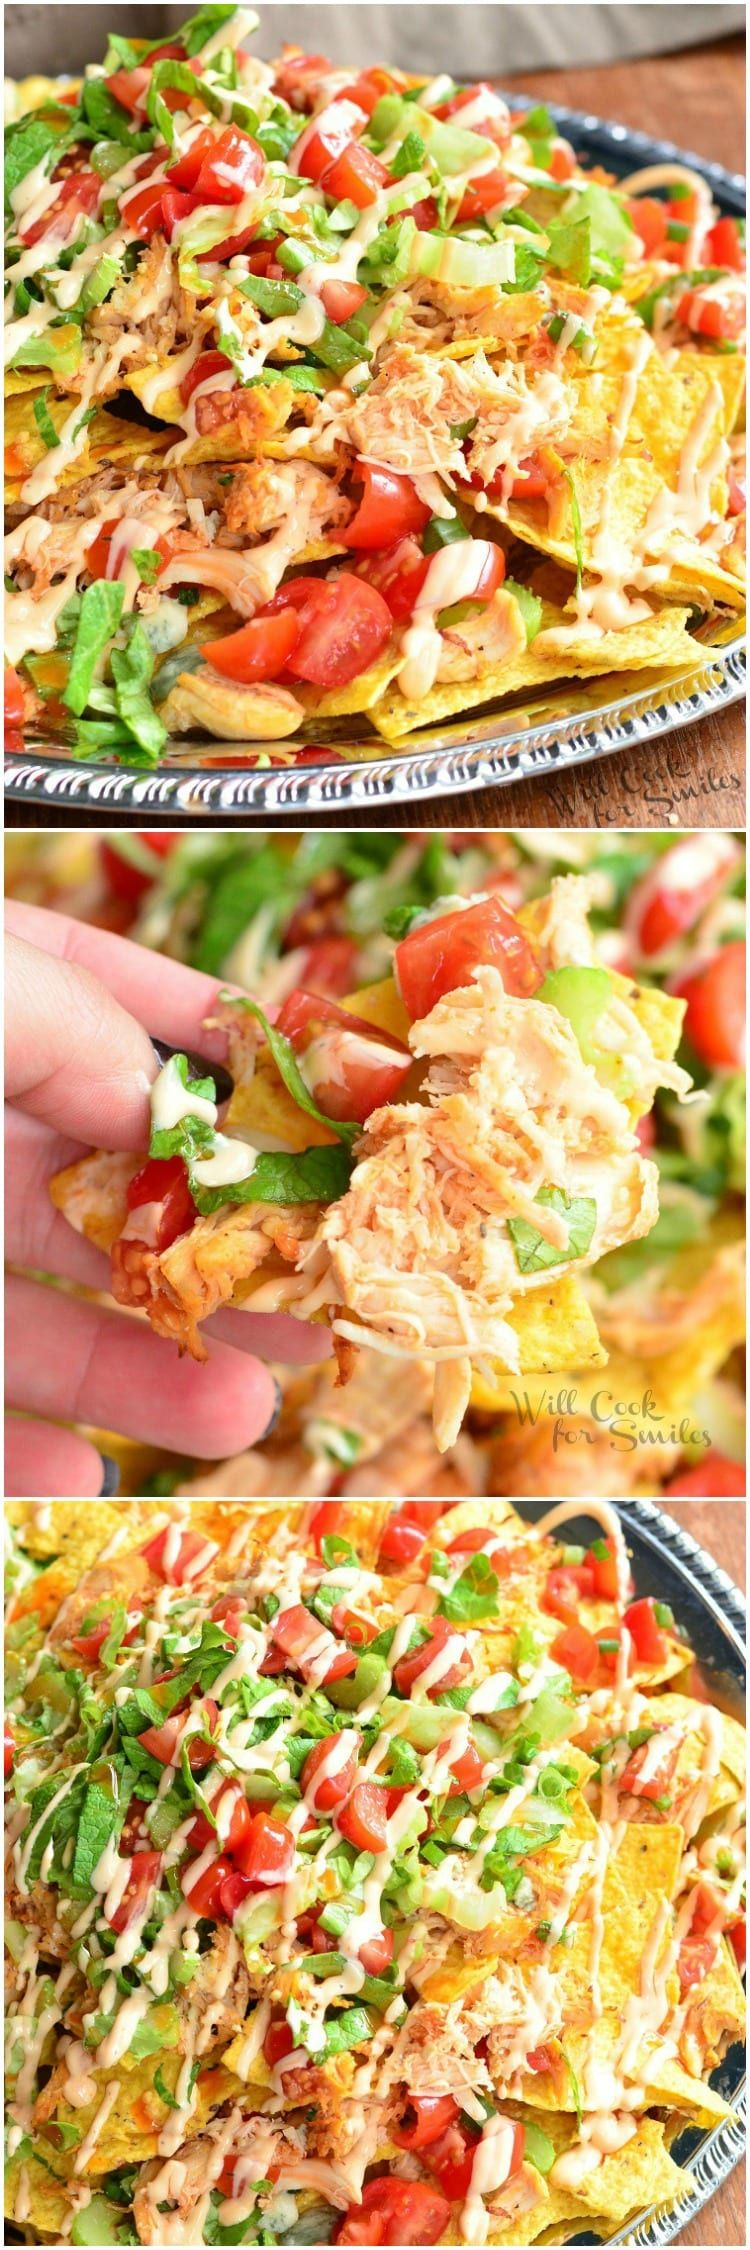 Buffalo Chicken Nachos recipe made with crispy tortilla chips, spicy buffalo sauce coated shredded chicken, blue cheese, veggies, more cheese and buffalo ranch dressing. #nachos #chicken #spicy #buffalochicken #chickennachos #buffalochickennachos